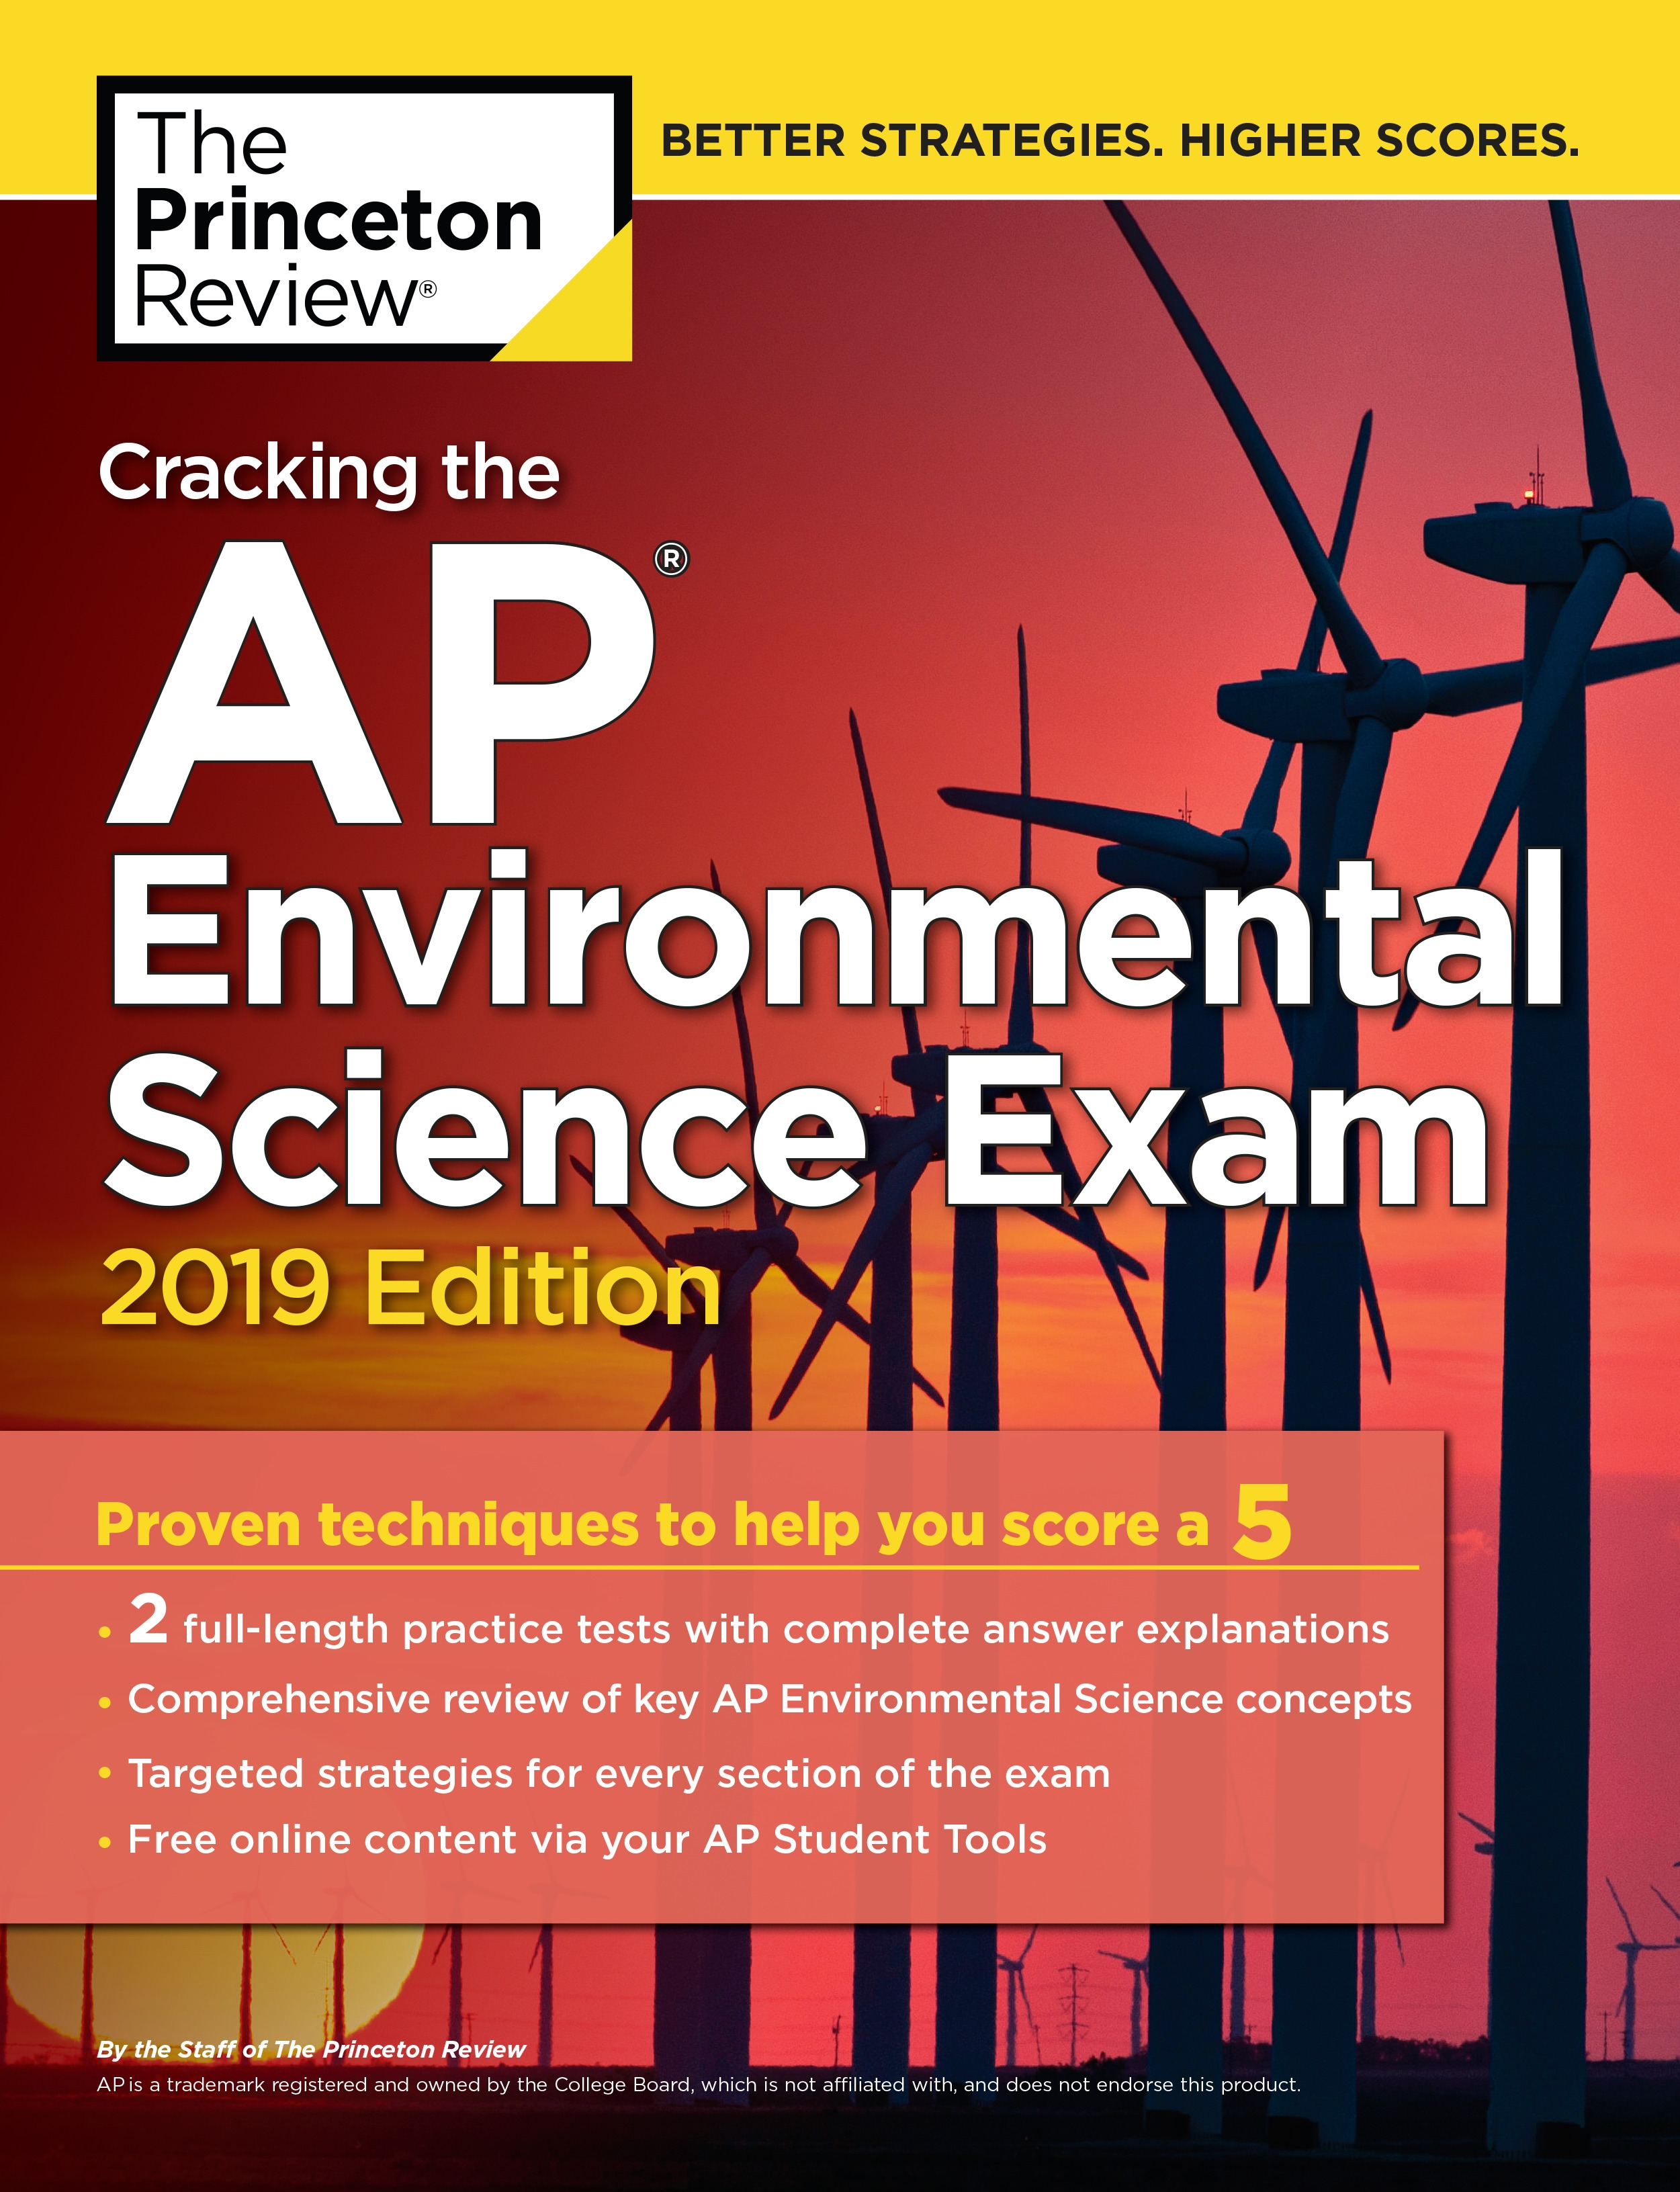 Cracking The AP Environmental Science Exam, 2019 Edition by